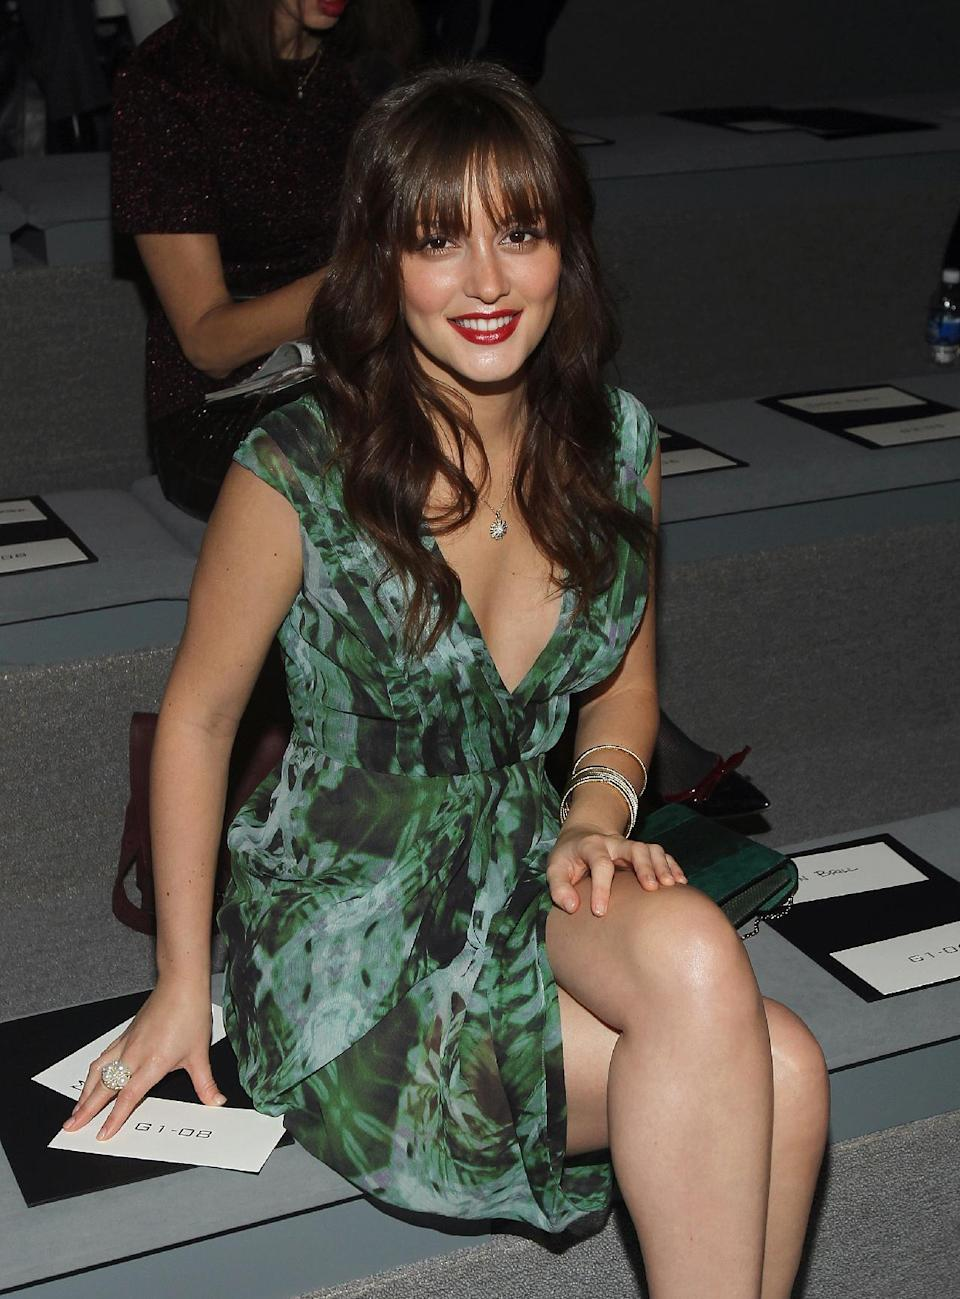 Actress Leighton Meester attends the Vera Wang Fall 2012 show during Fashion Week in New York, Tuesday, Feb. 14, 2012. (AP Photo/ Donald Traill)